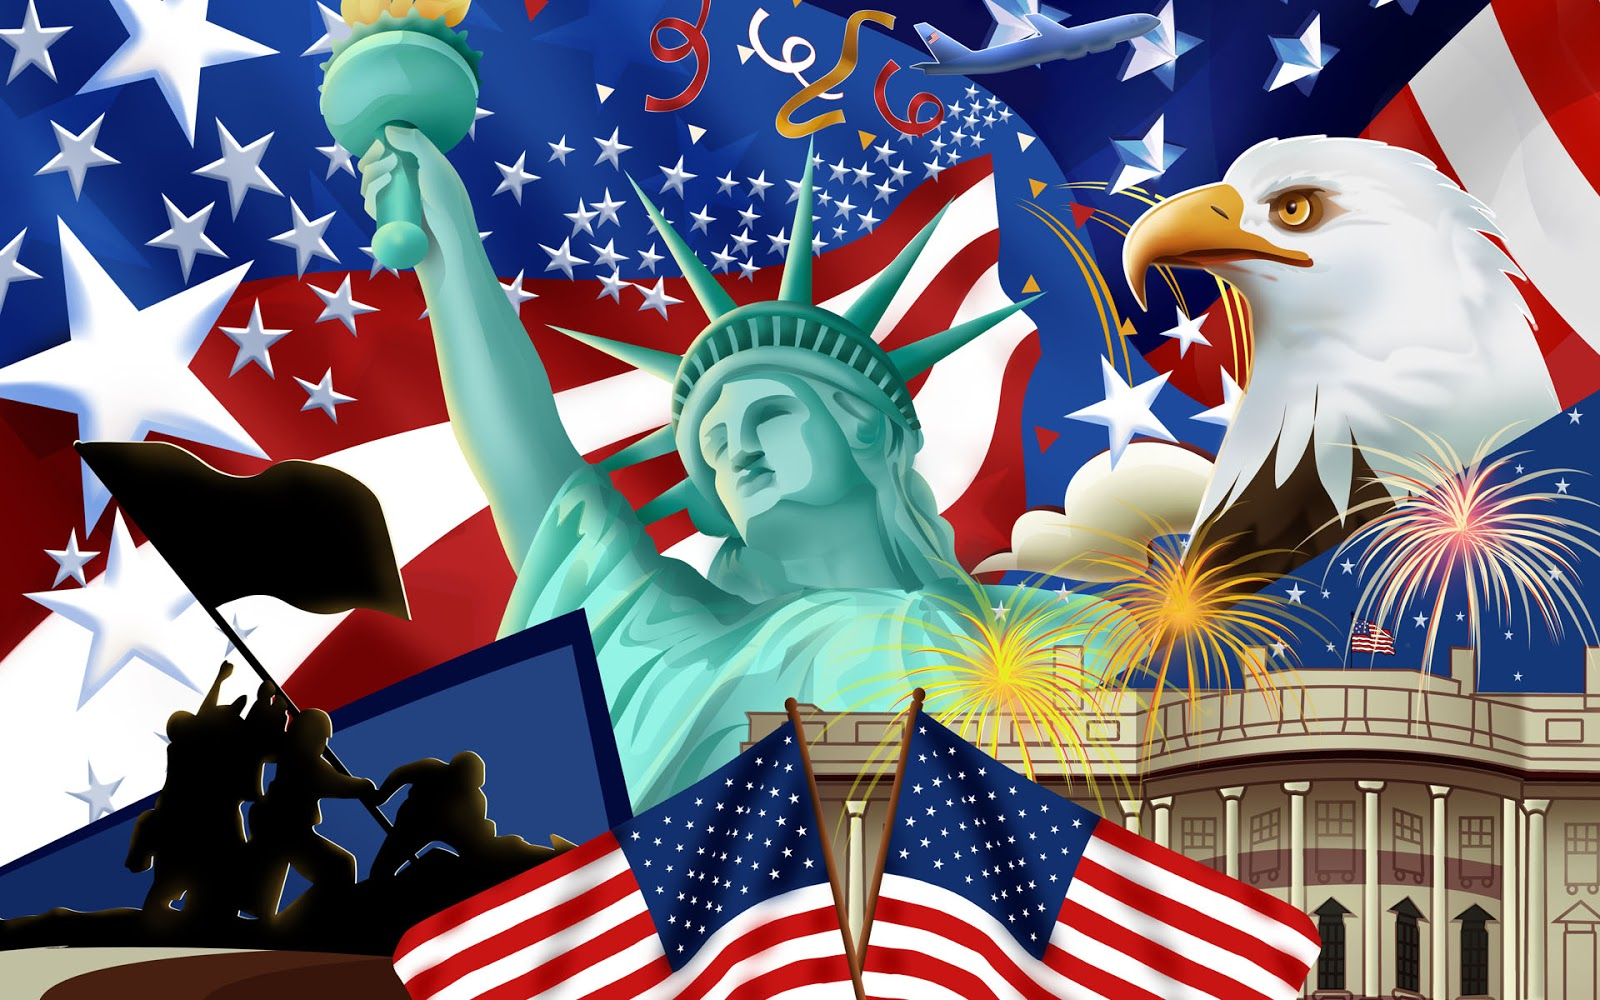 http://1.bp.blogspot.com/-bGo0gbXNakY/UPJ-R8gBHLI/AAAAAAAAFNw/mFG9q3tWsFQ/s1600/usa-flag+all+hd+wallpapers.jpg